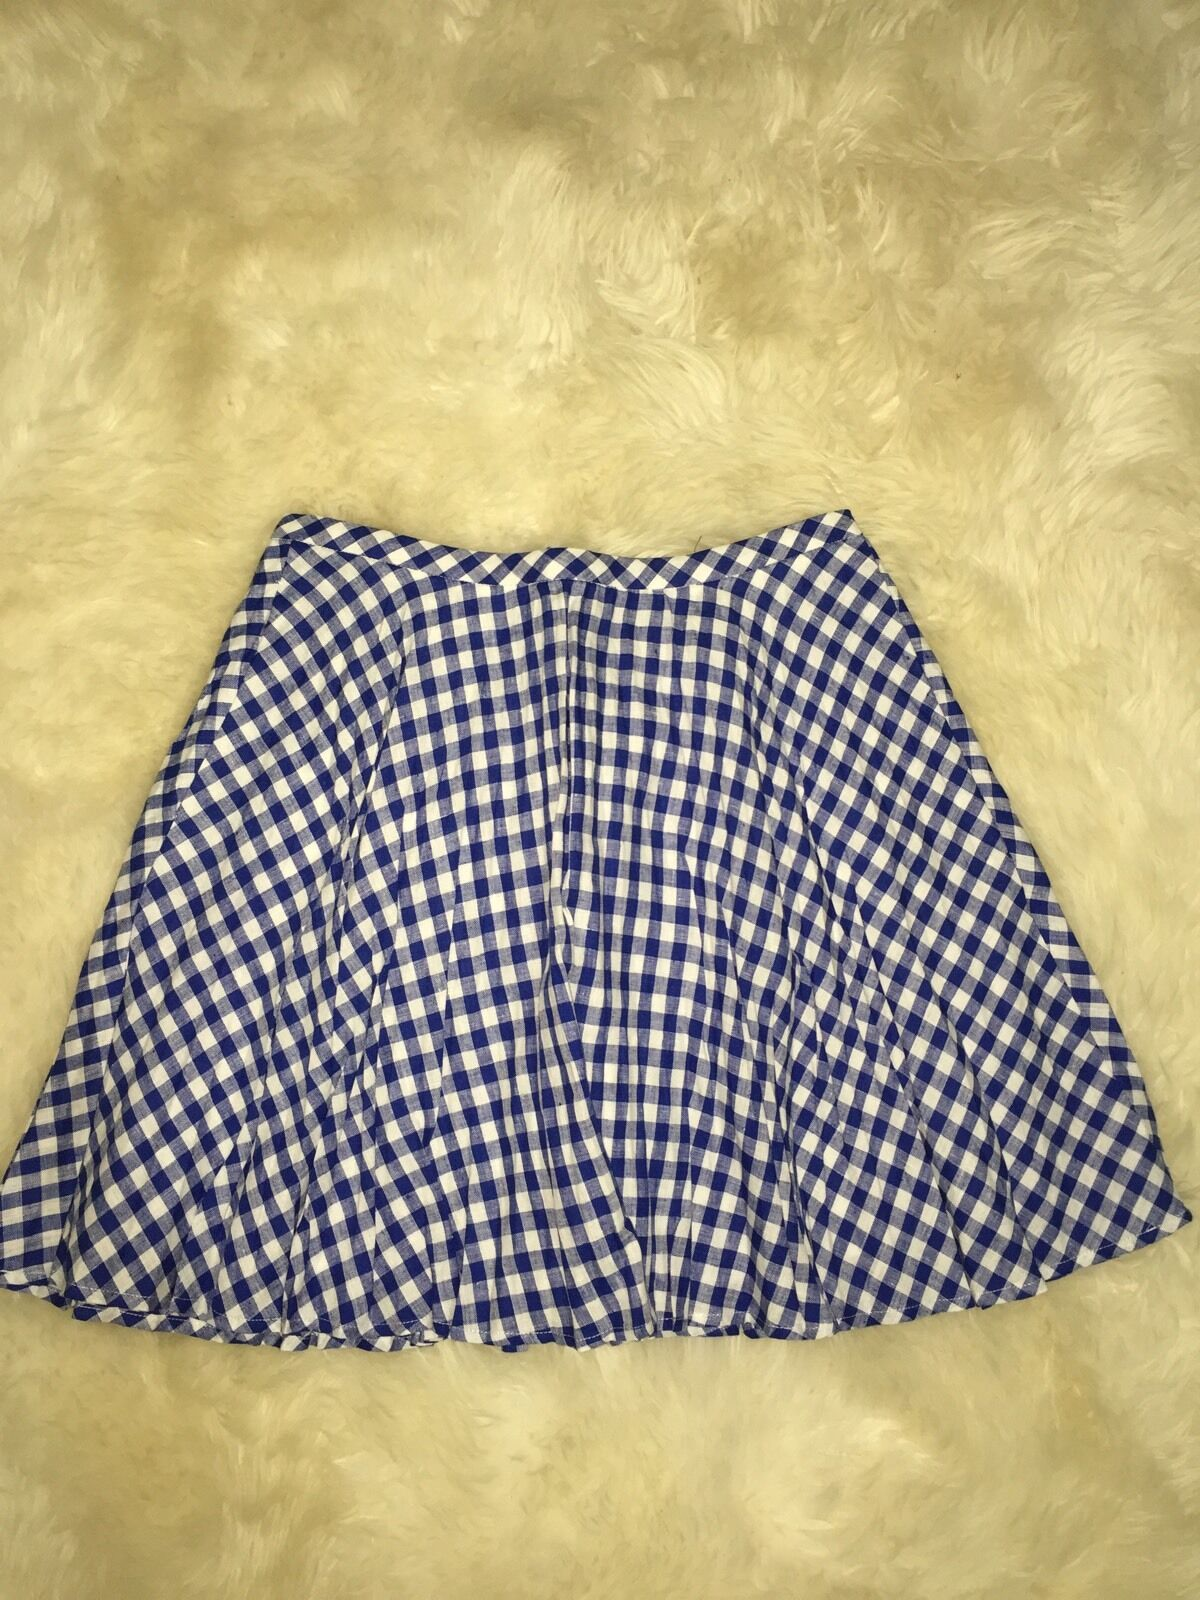 J Crew Gingham Pleated Mini Skirt in 100% Linen NWT  88 Size 2  F1123